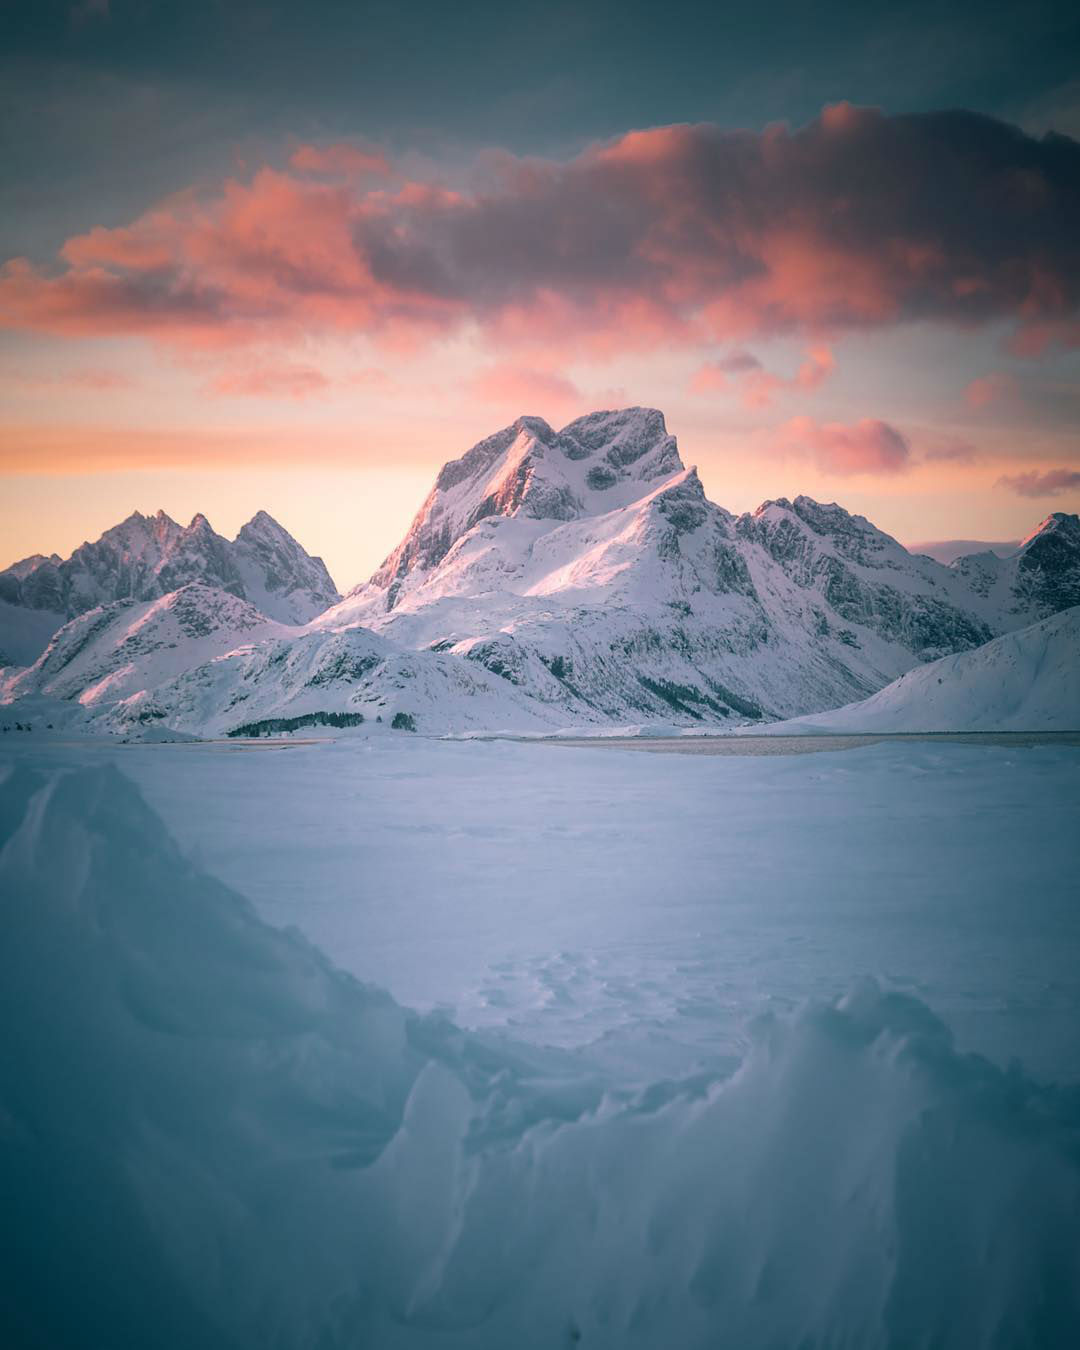 Norwegian Long Night Winter Nature Photography by Even Tryggstrand